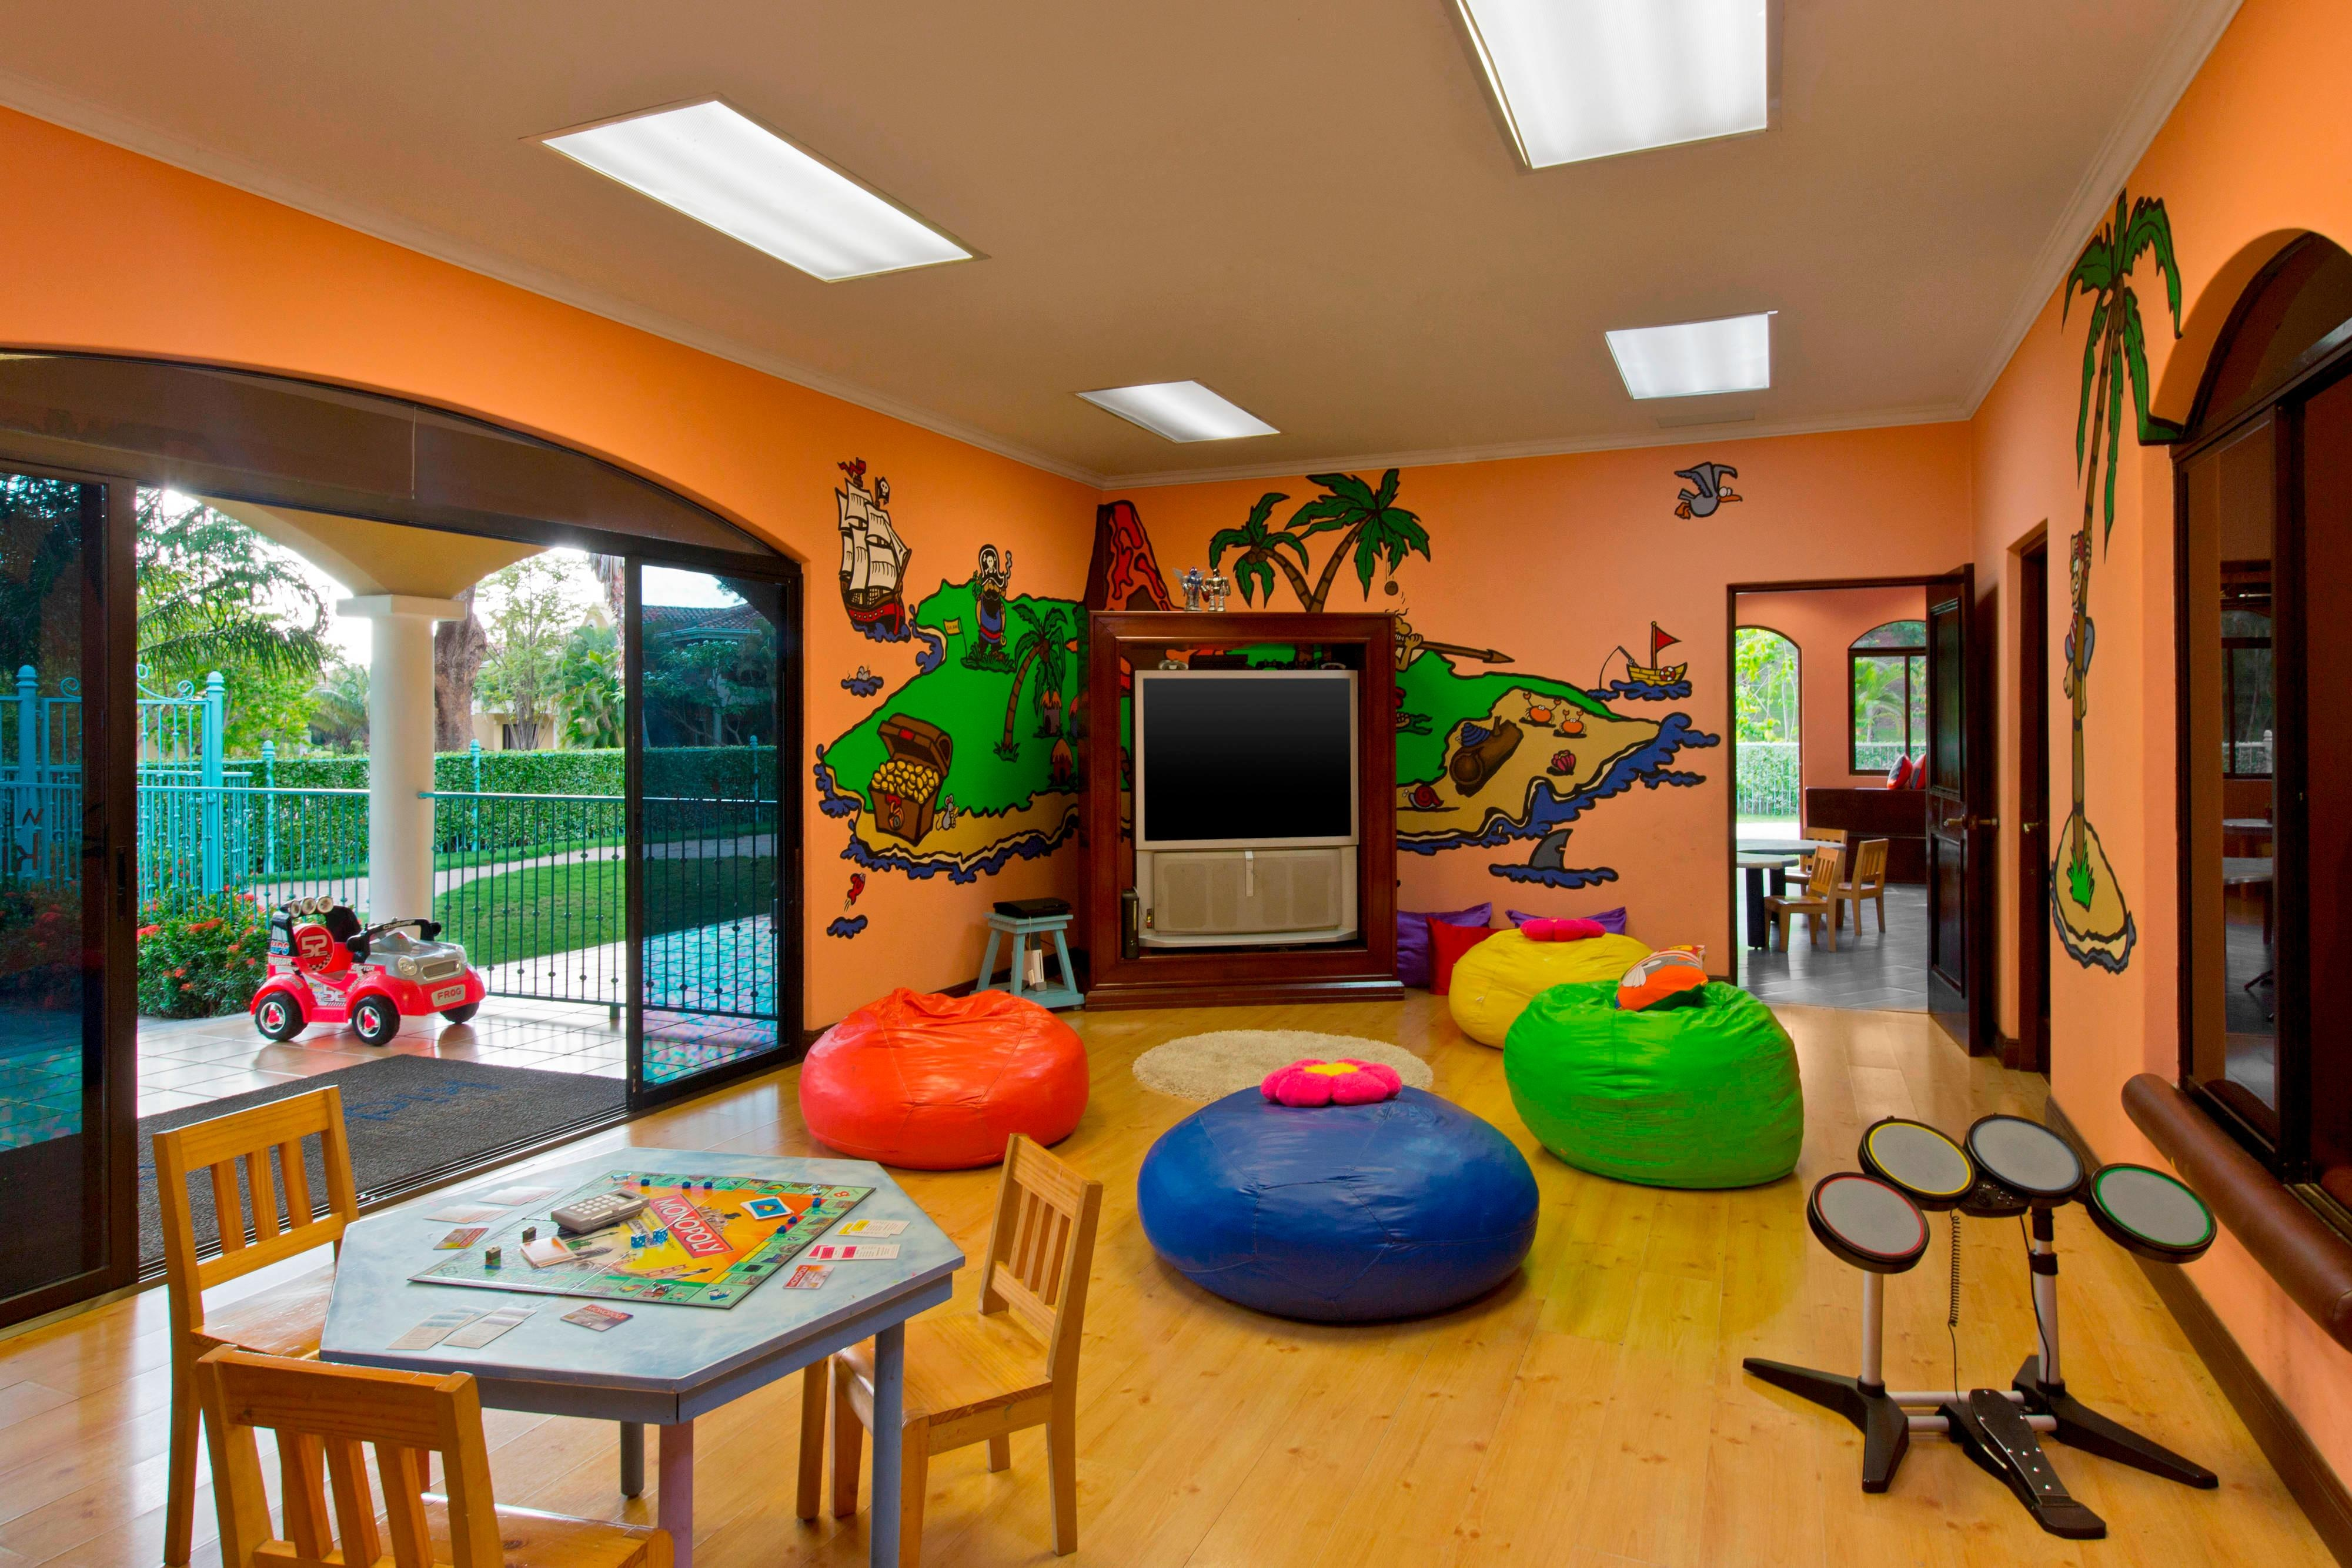 Westin Kids Club - Discovery Room